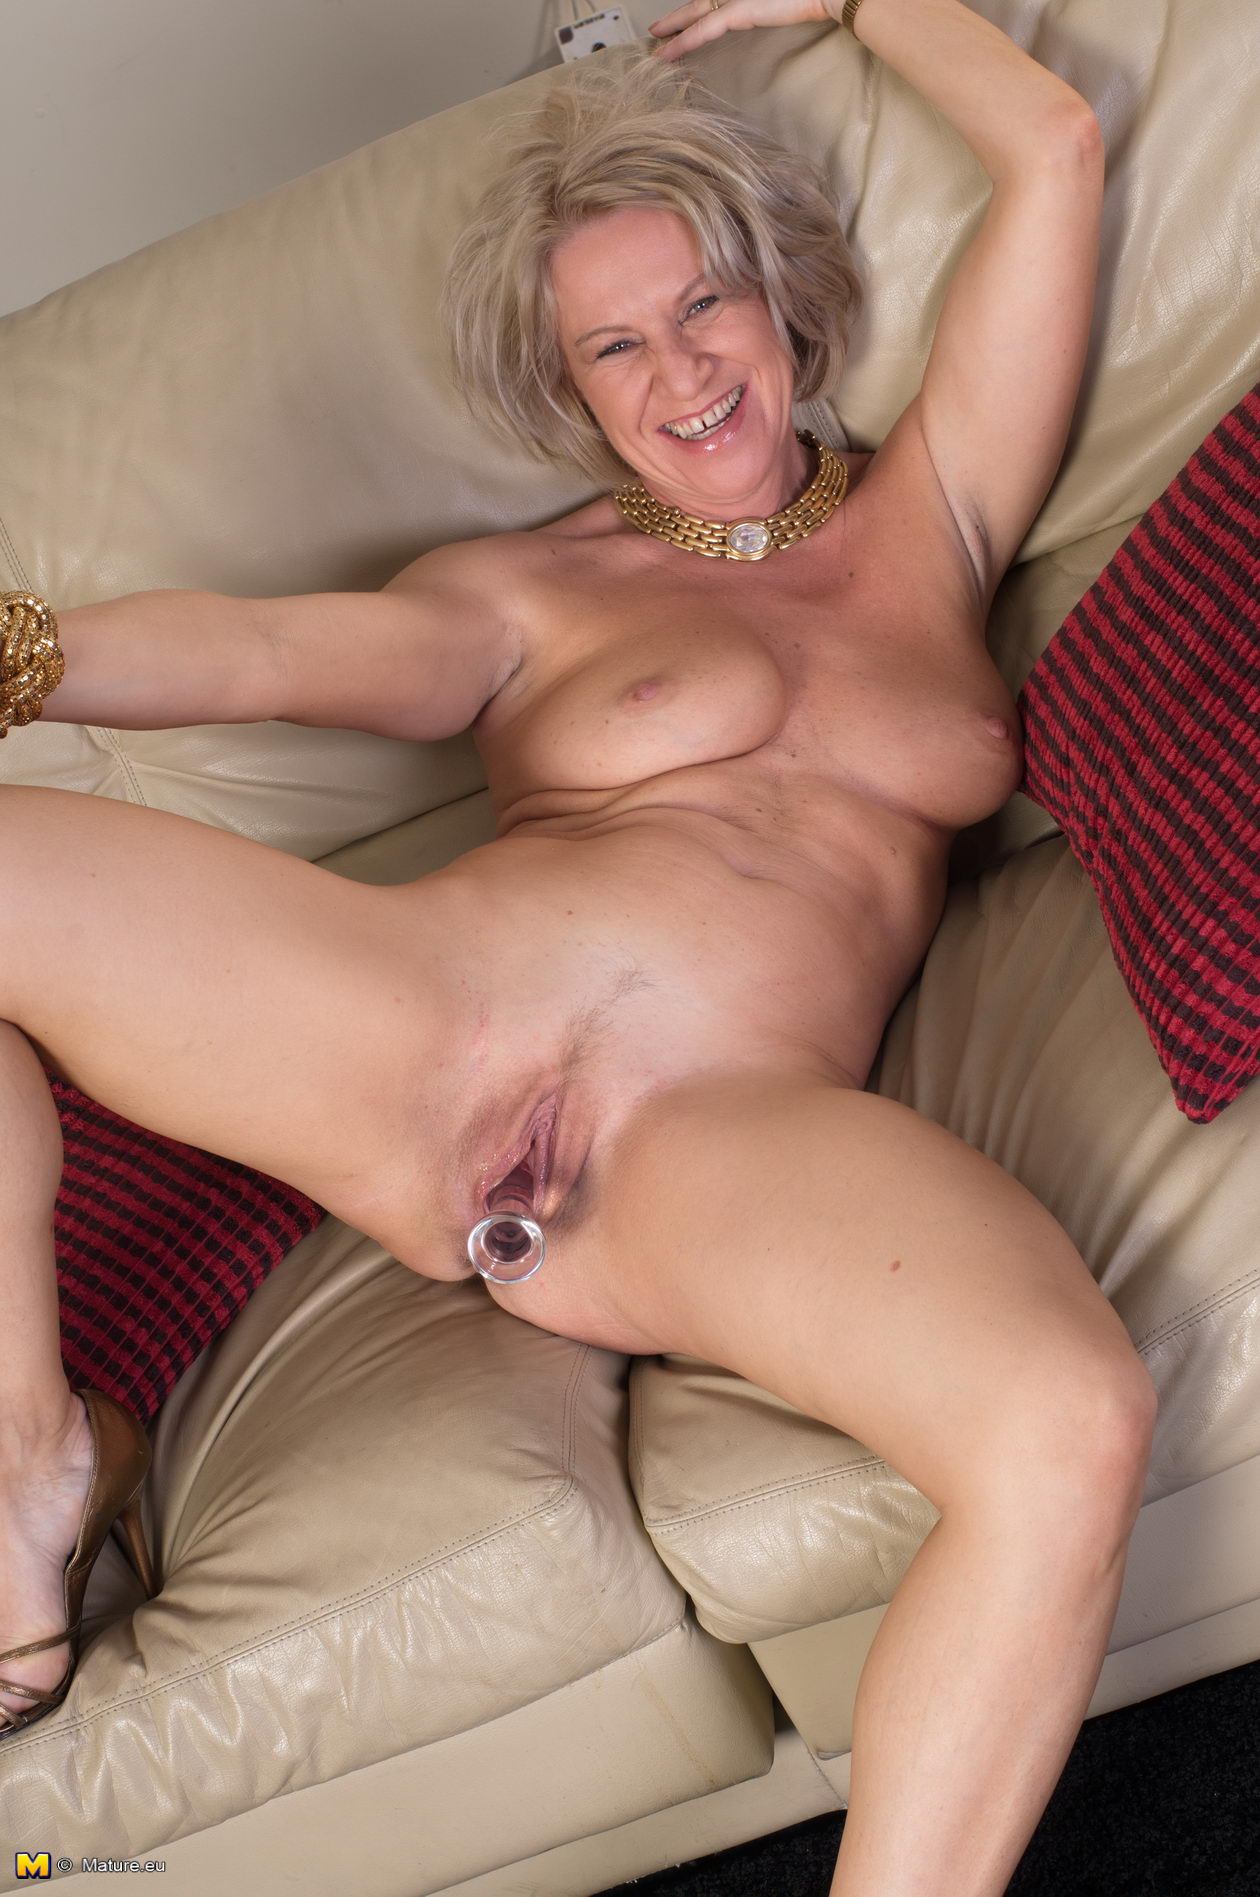 free mature sex picture gallery :: taxecarbone